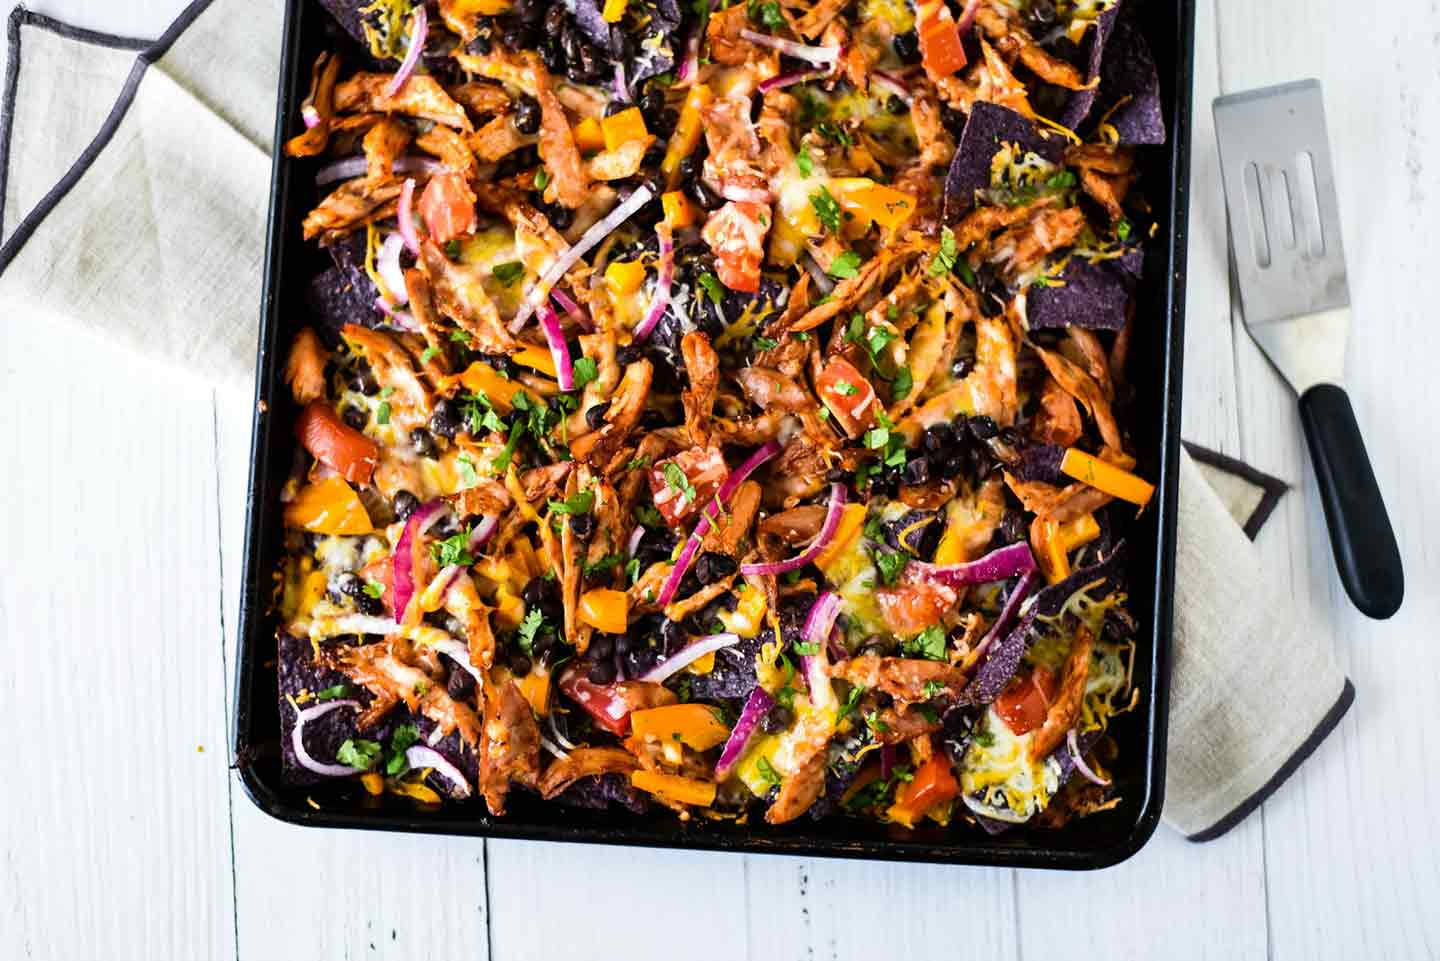 Horizontal image of Sheet Pan BBQ Chicken Nachos on a sheet pan, shown from above